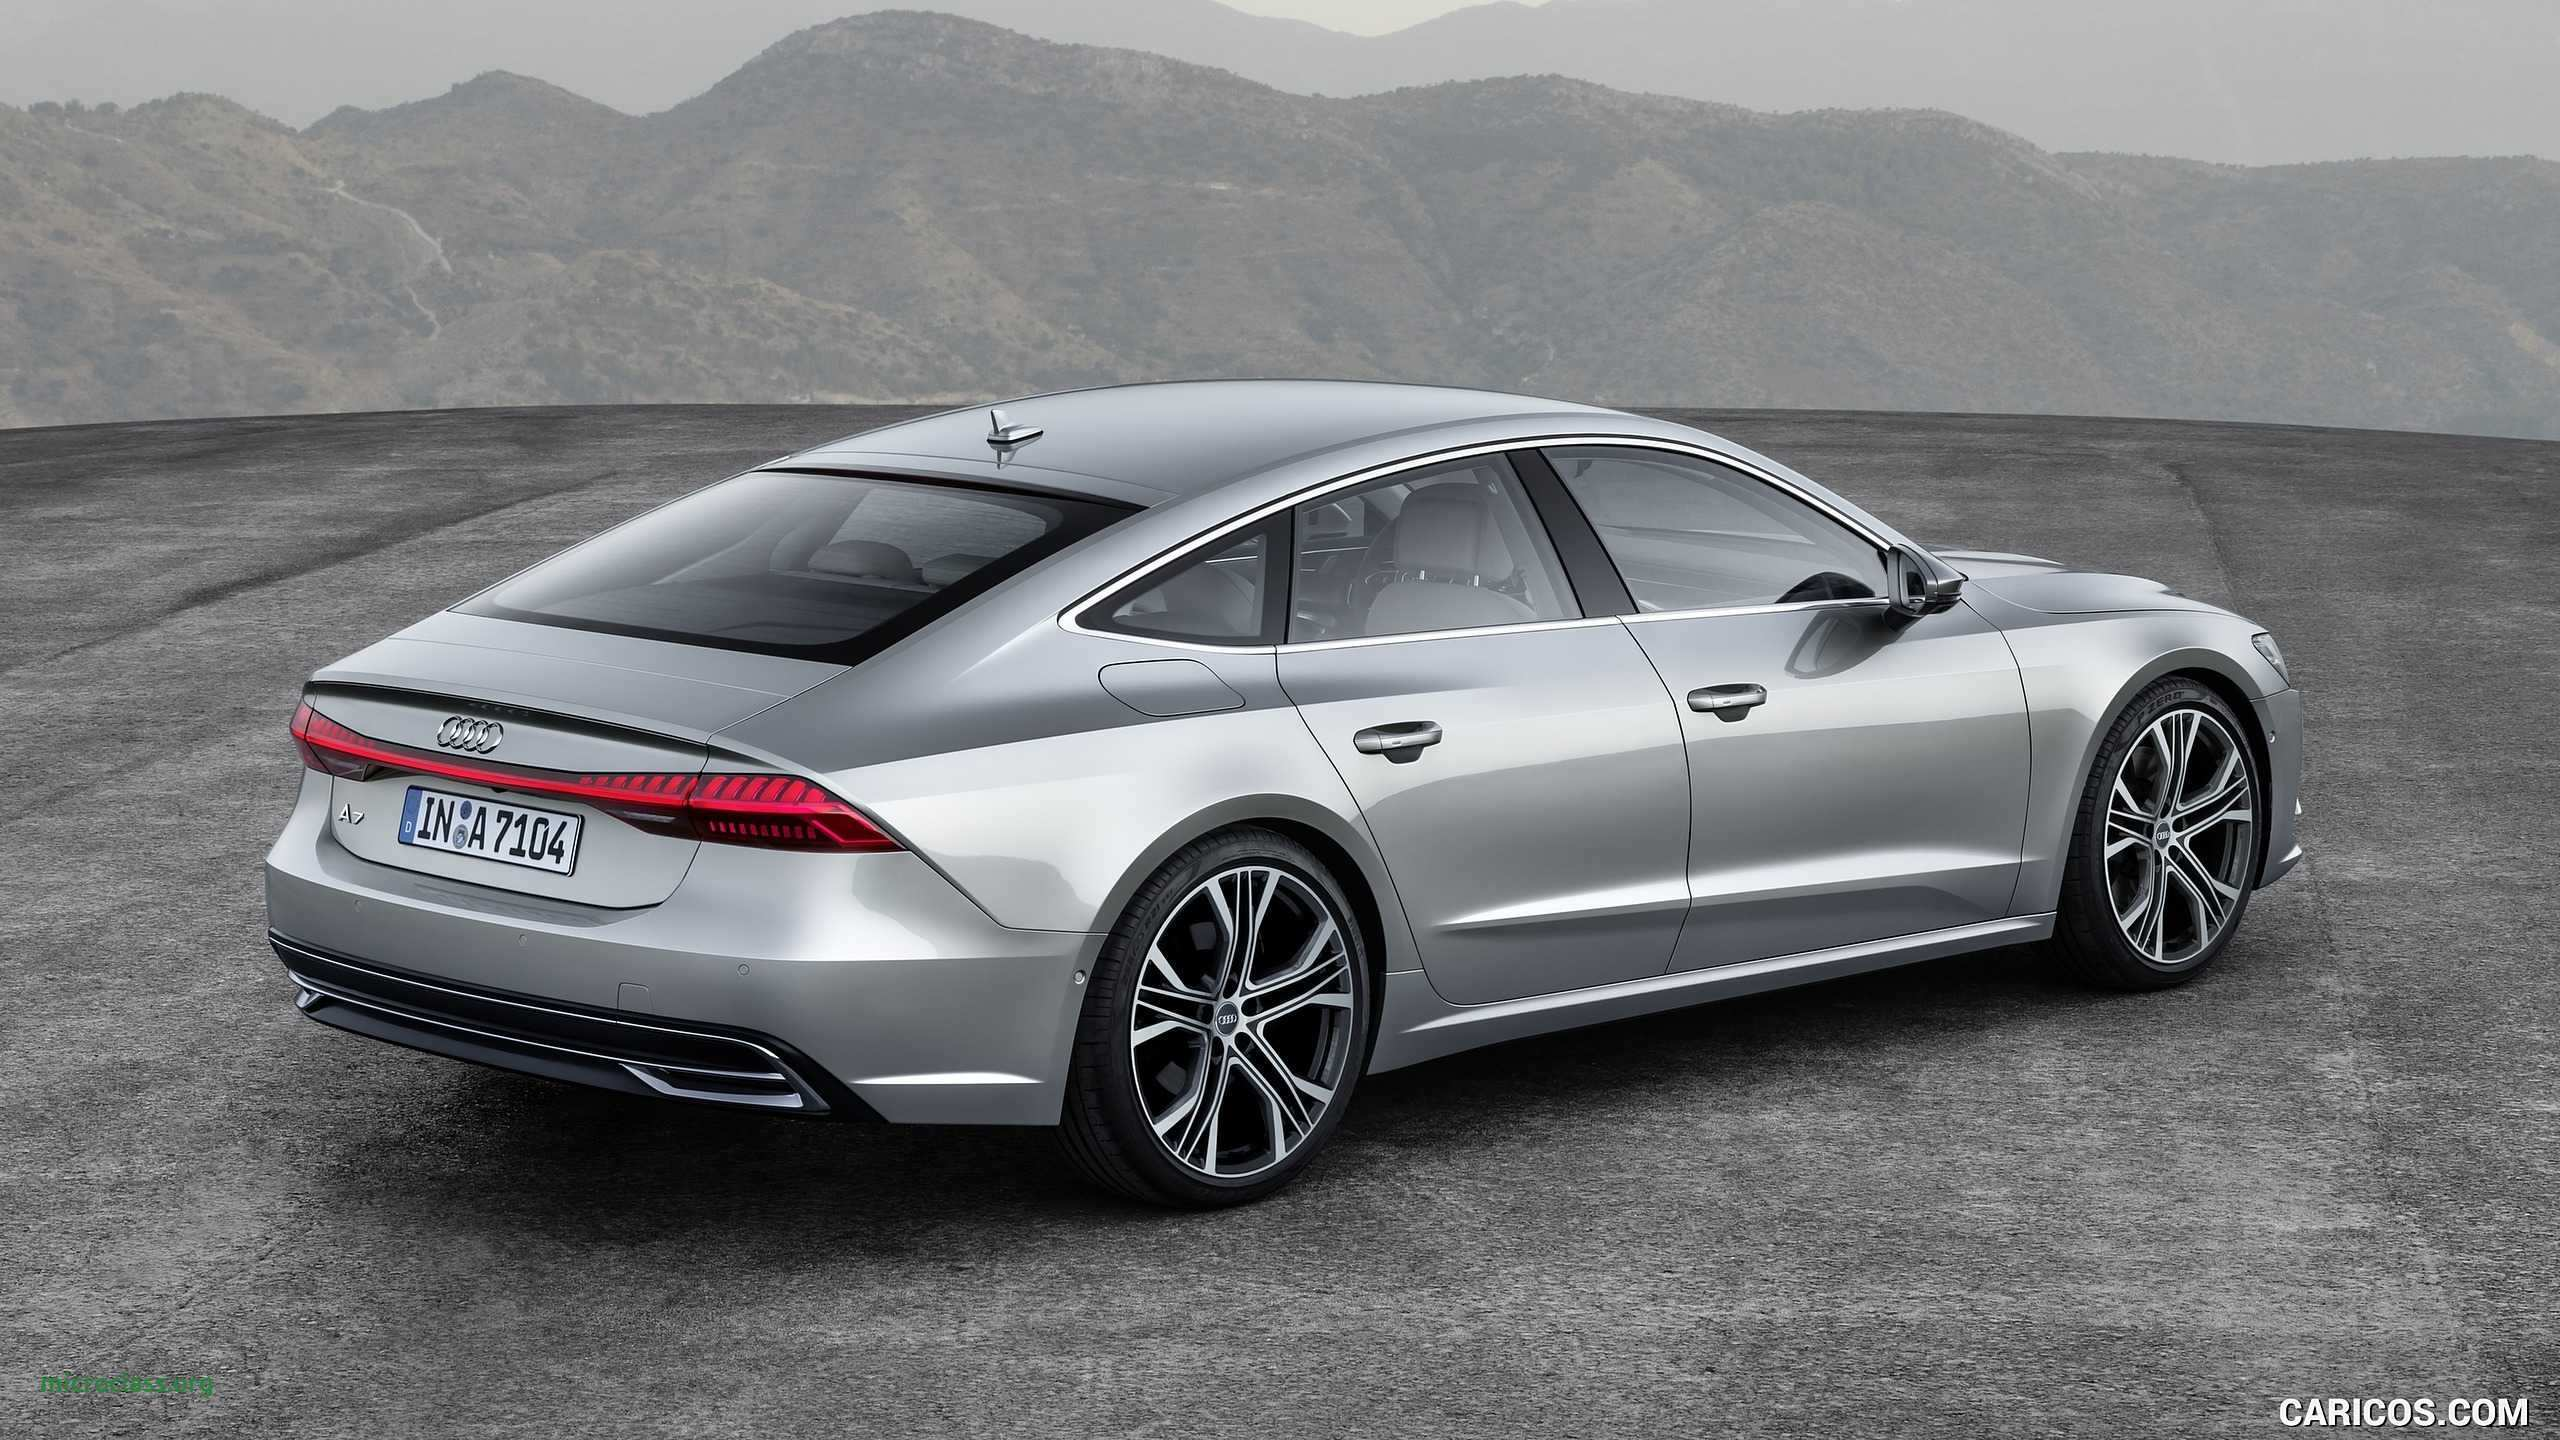 57 Best Review 2019 Audi A7 Review Performance for 2019 Audi A7 Review